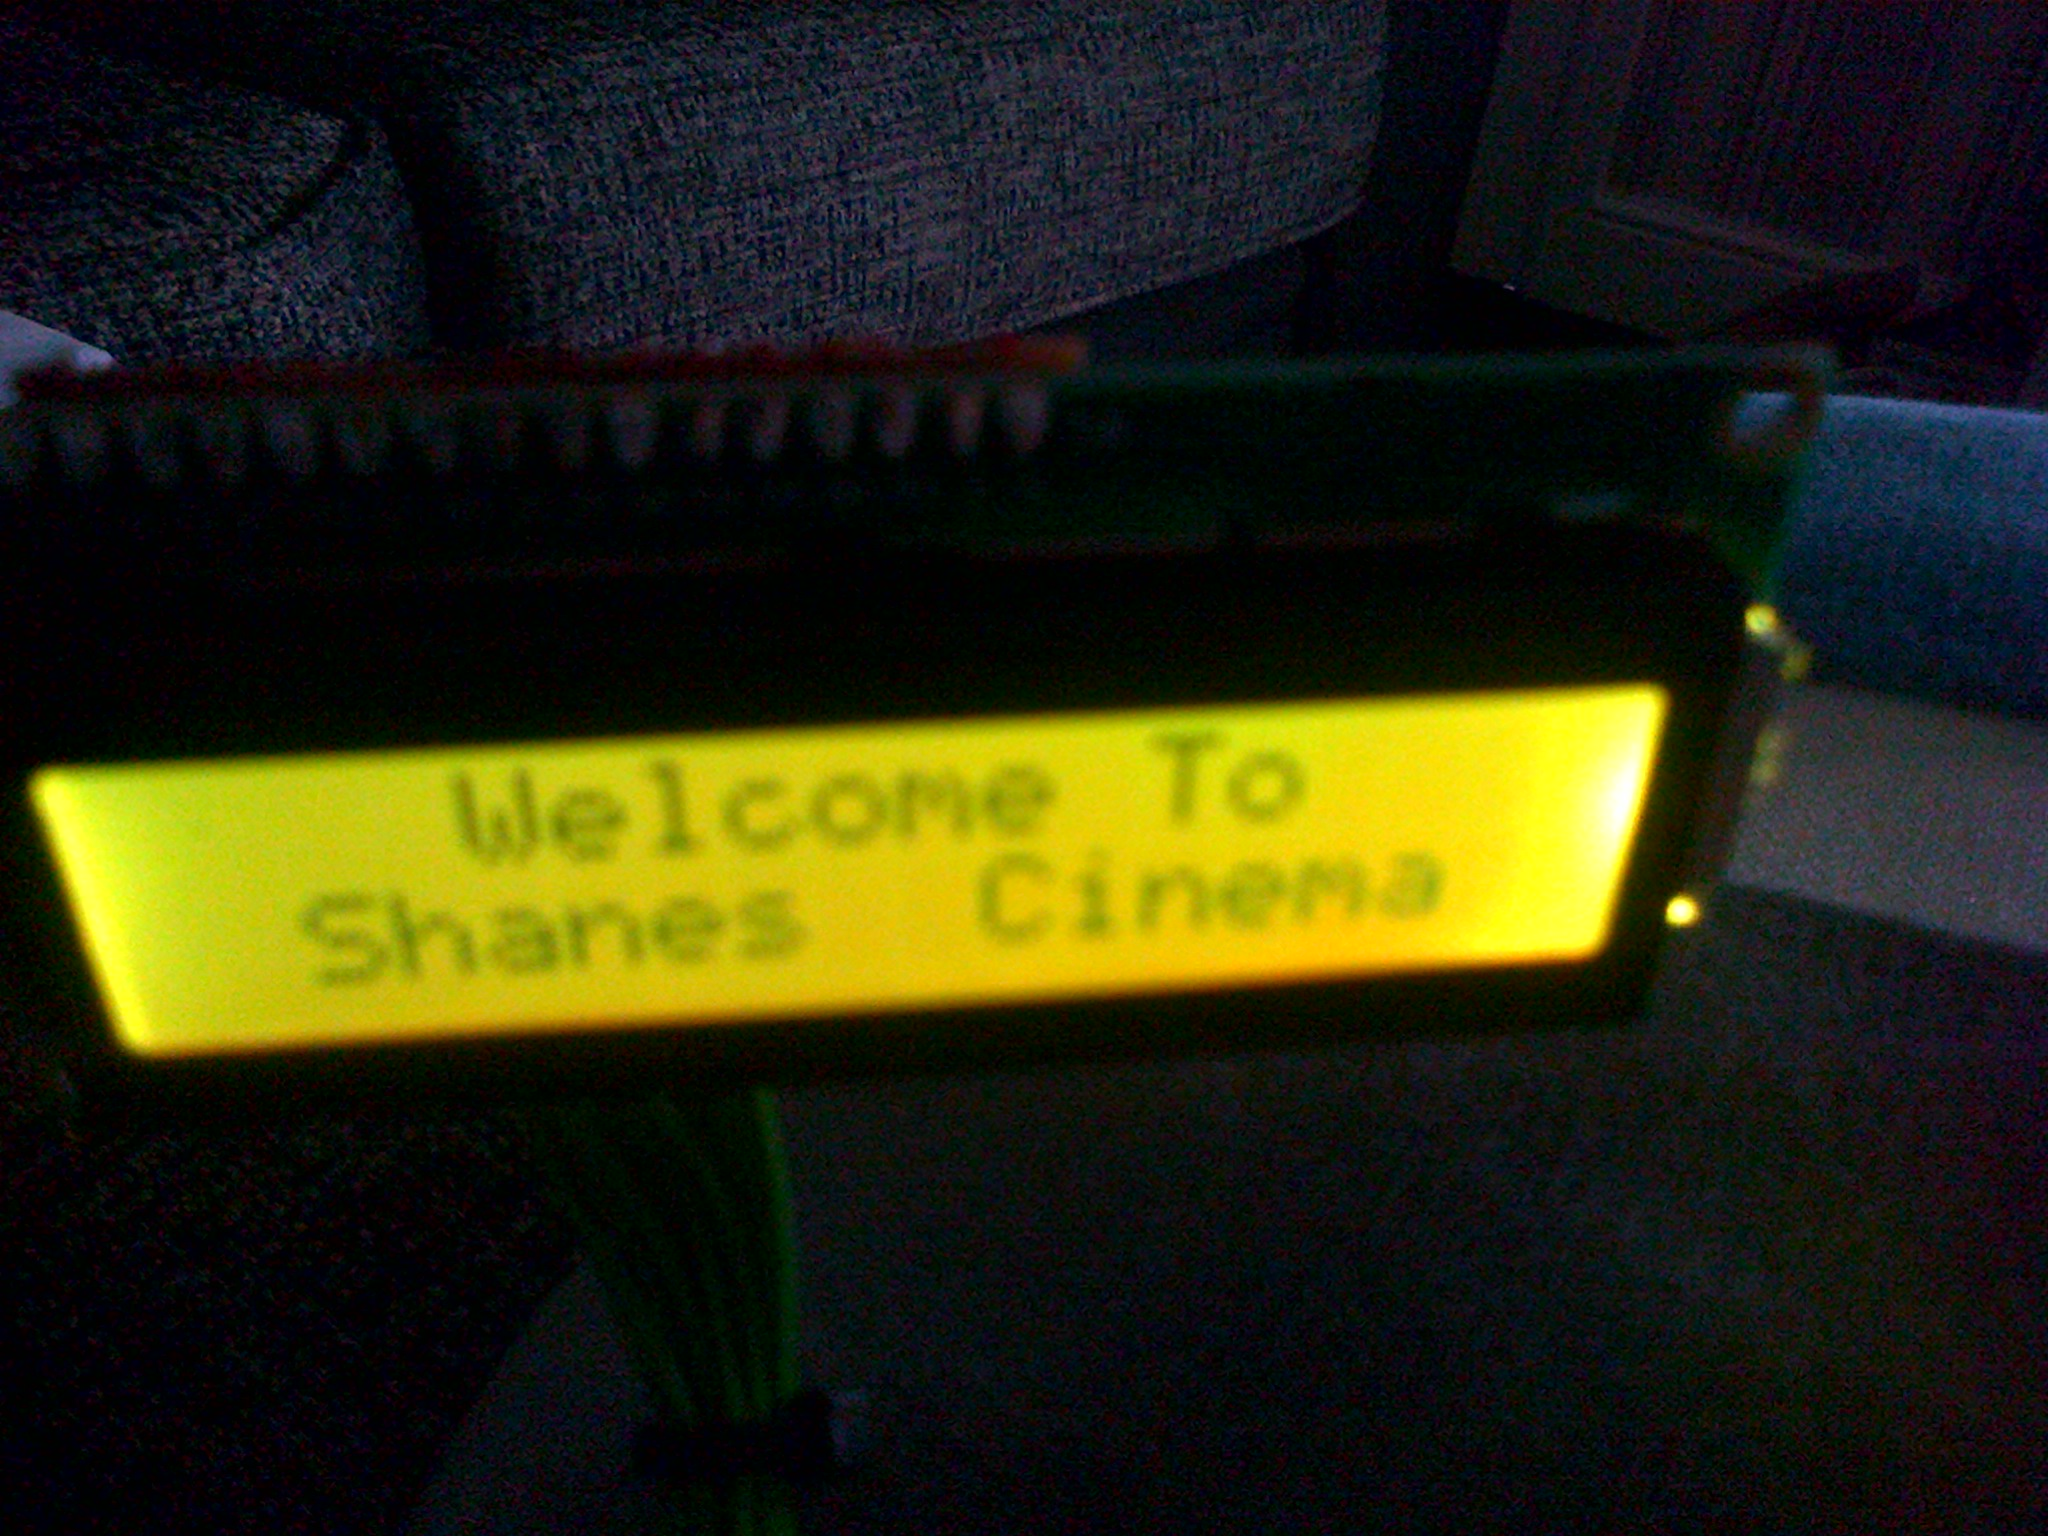 Connect A 16x2 LCD Display To An Arduino